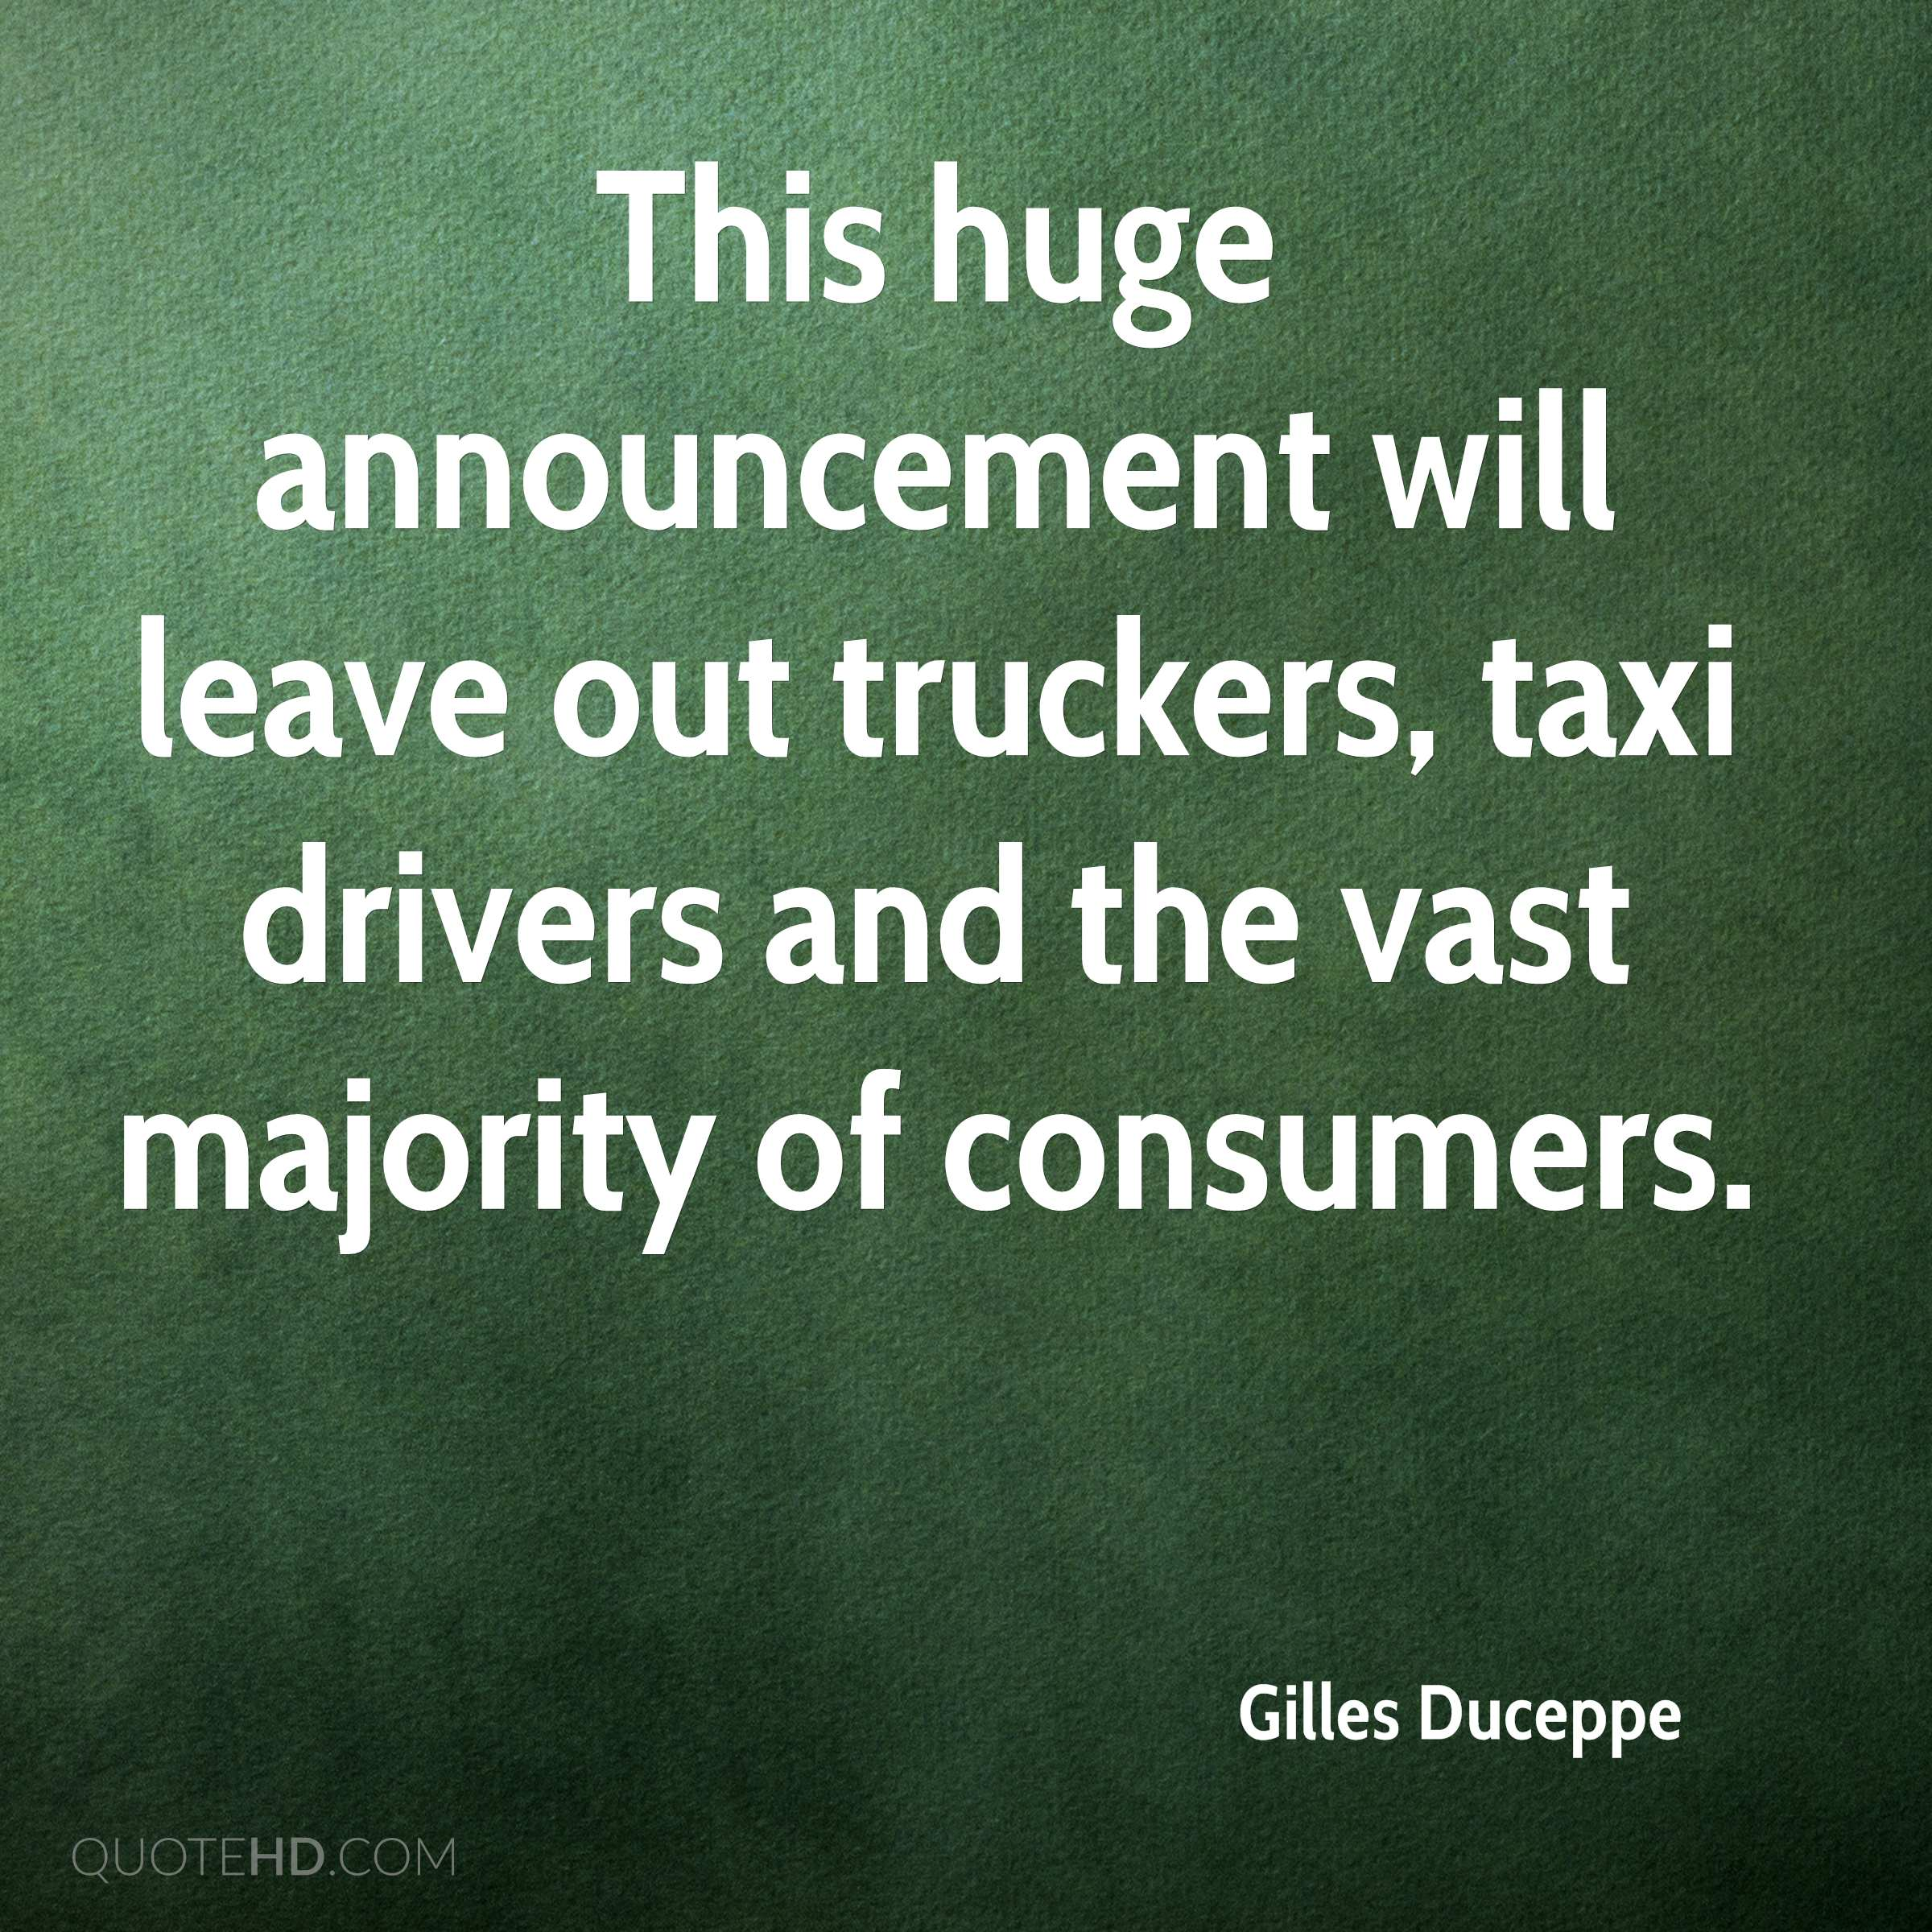 This huge announcement will leave out truckers, taxi drivers and the vast majority of consumers.